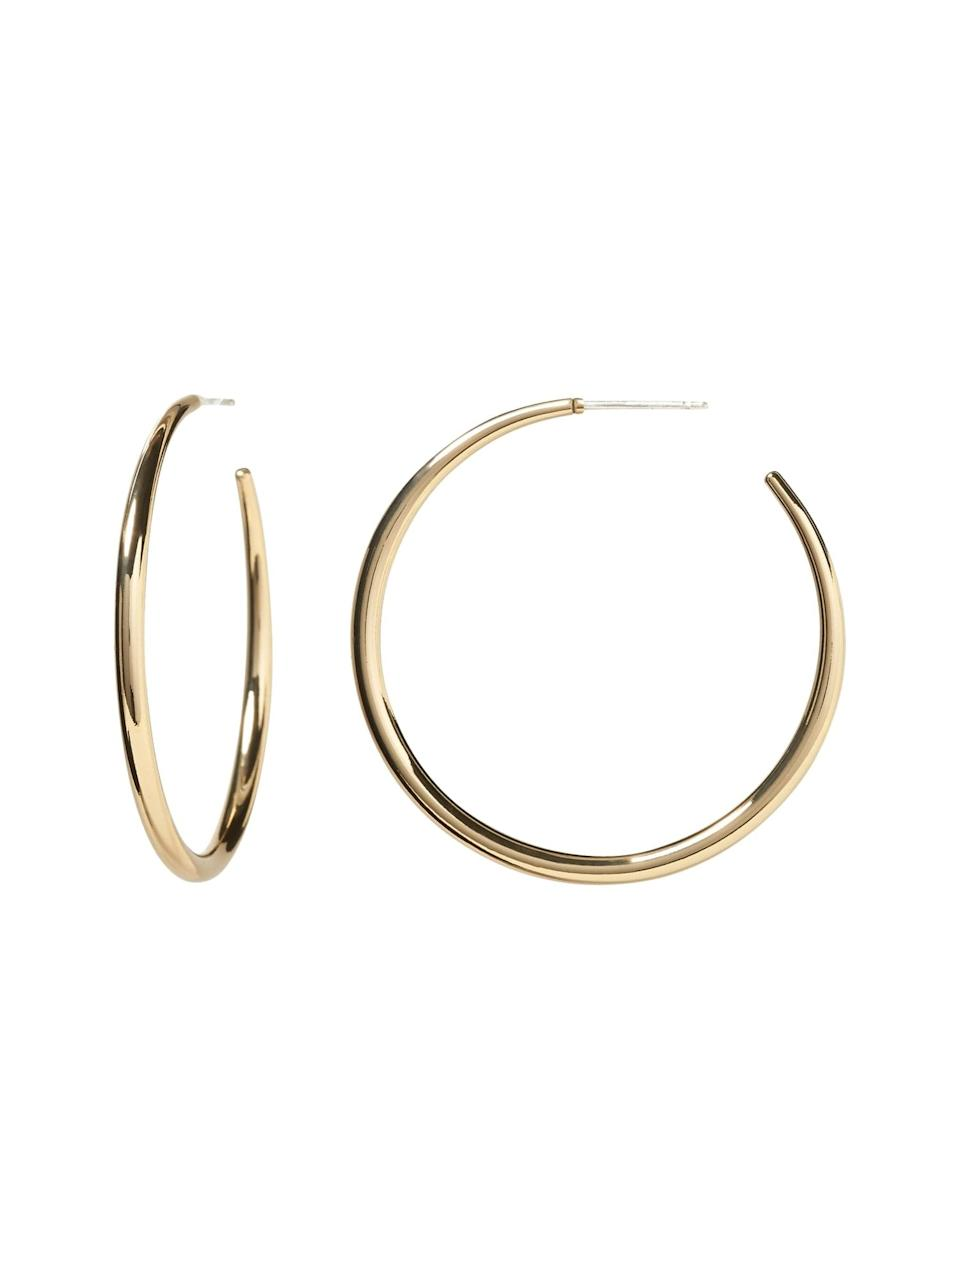 <p>Totally understand is big earrings aren't exactly you think. Even something as simple as these <span>Banana Republic Everyday Hoop Earrings with 10K Gold</span> ($38) can give a little glint in your eyeline.</p>